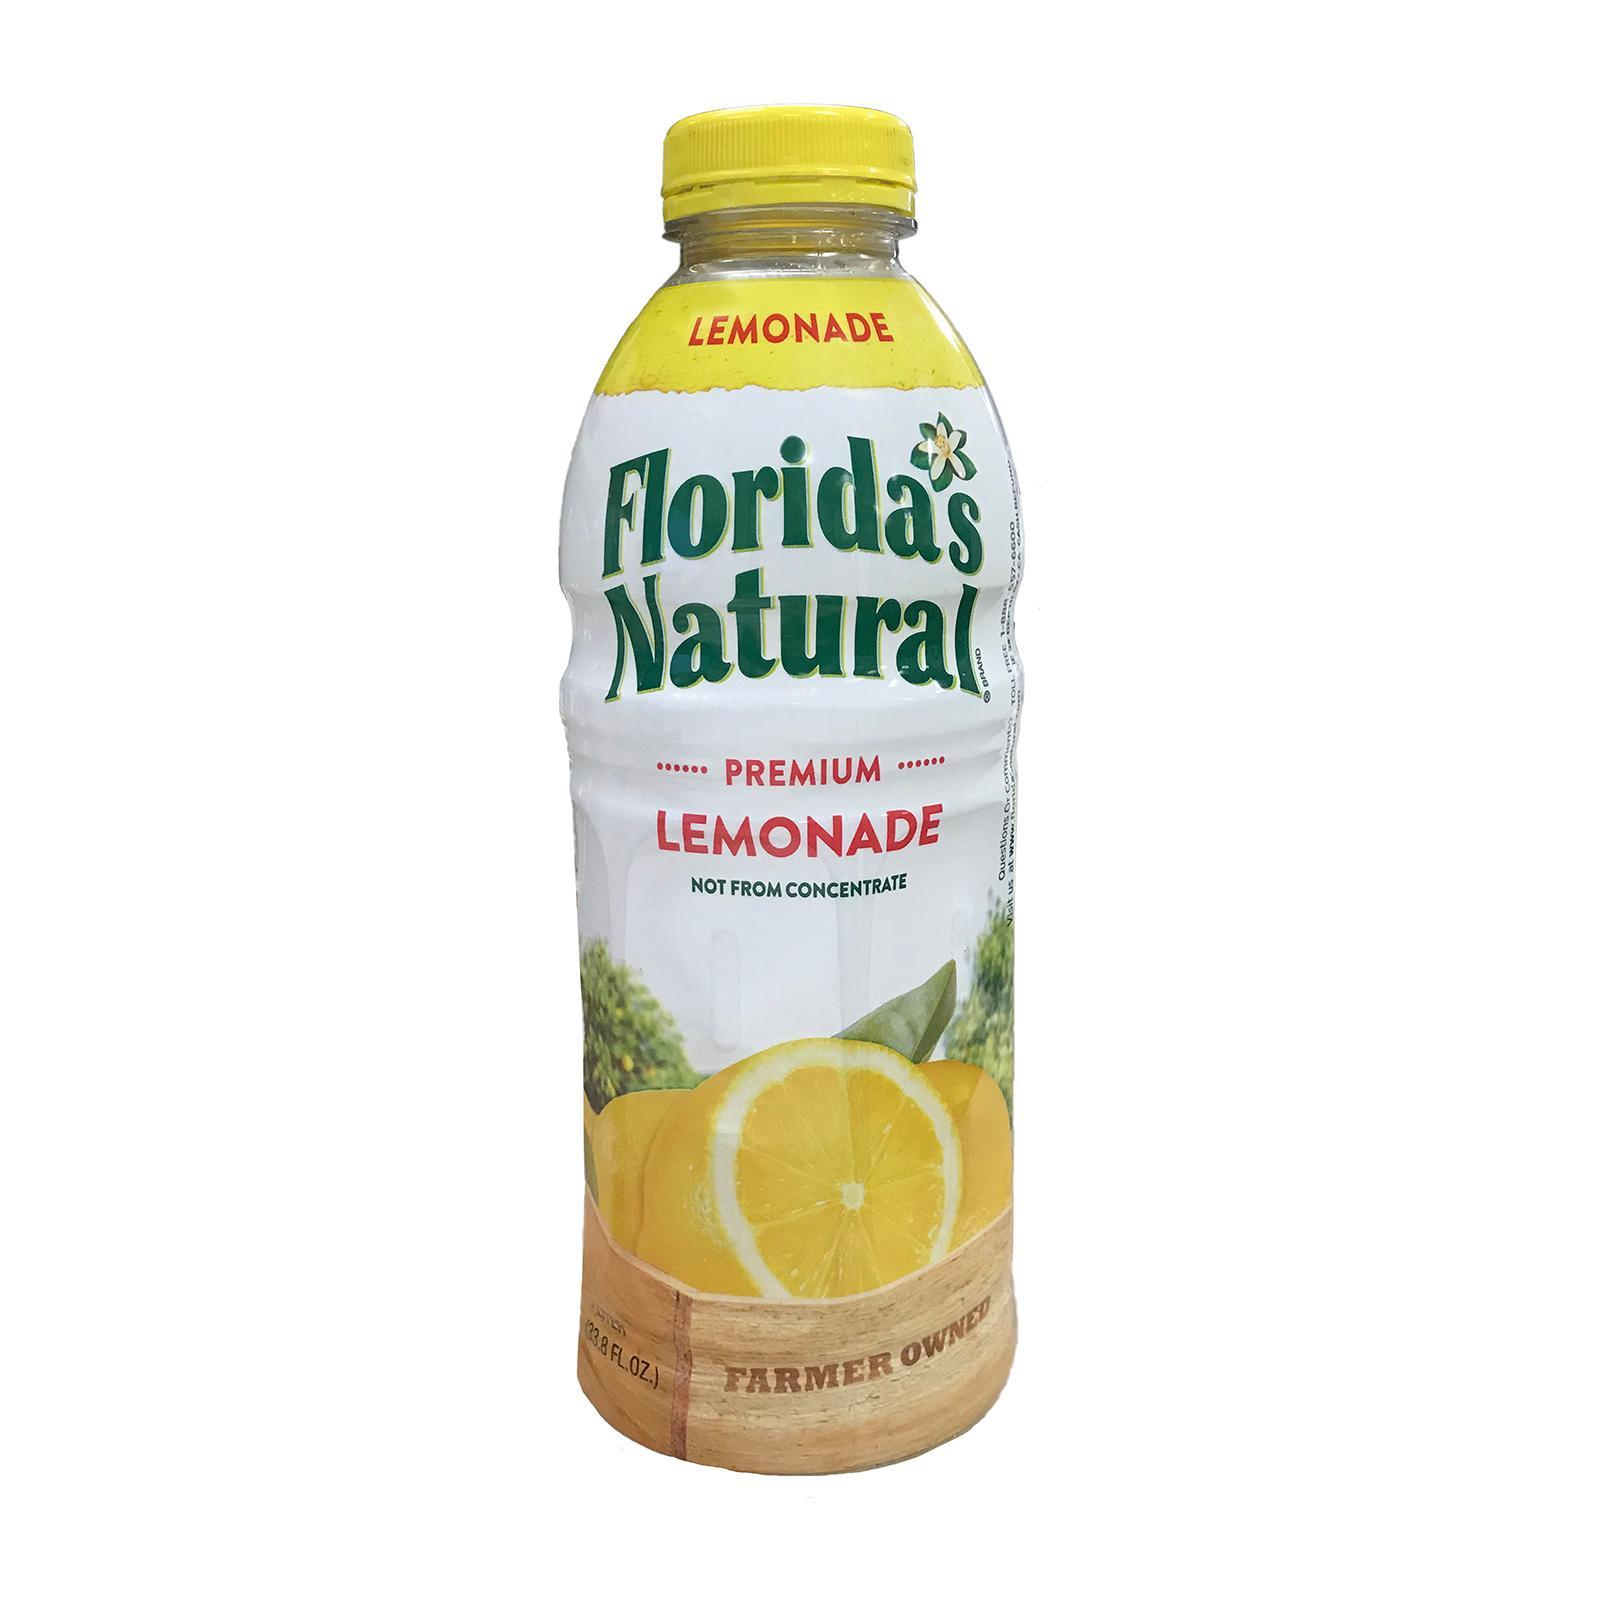 FLORIDA'S NATURAL Lemonade Juice 1L